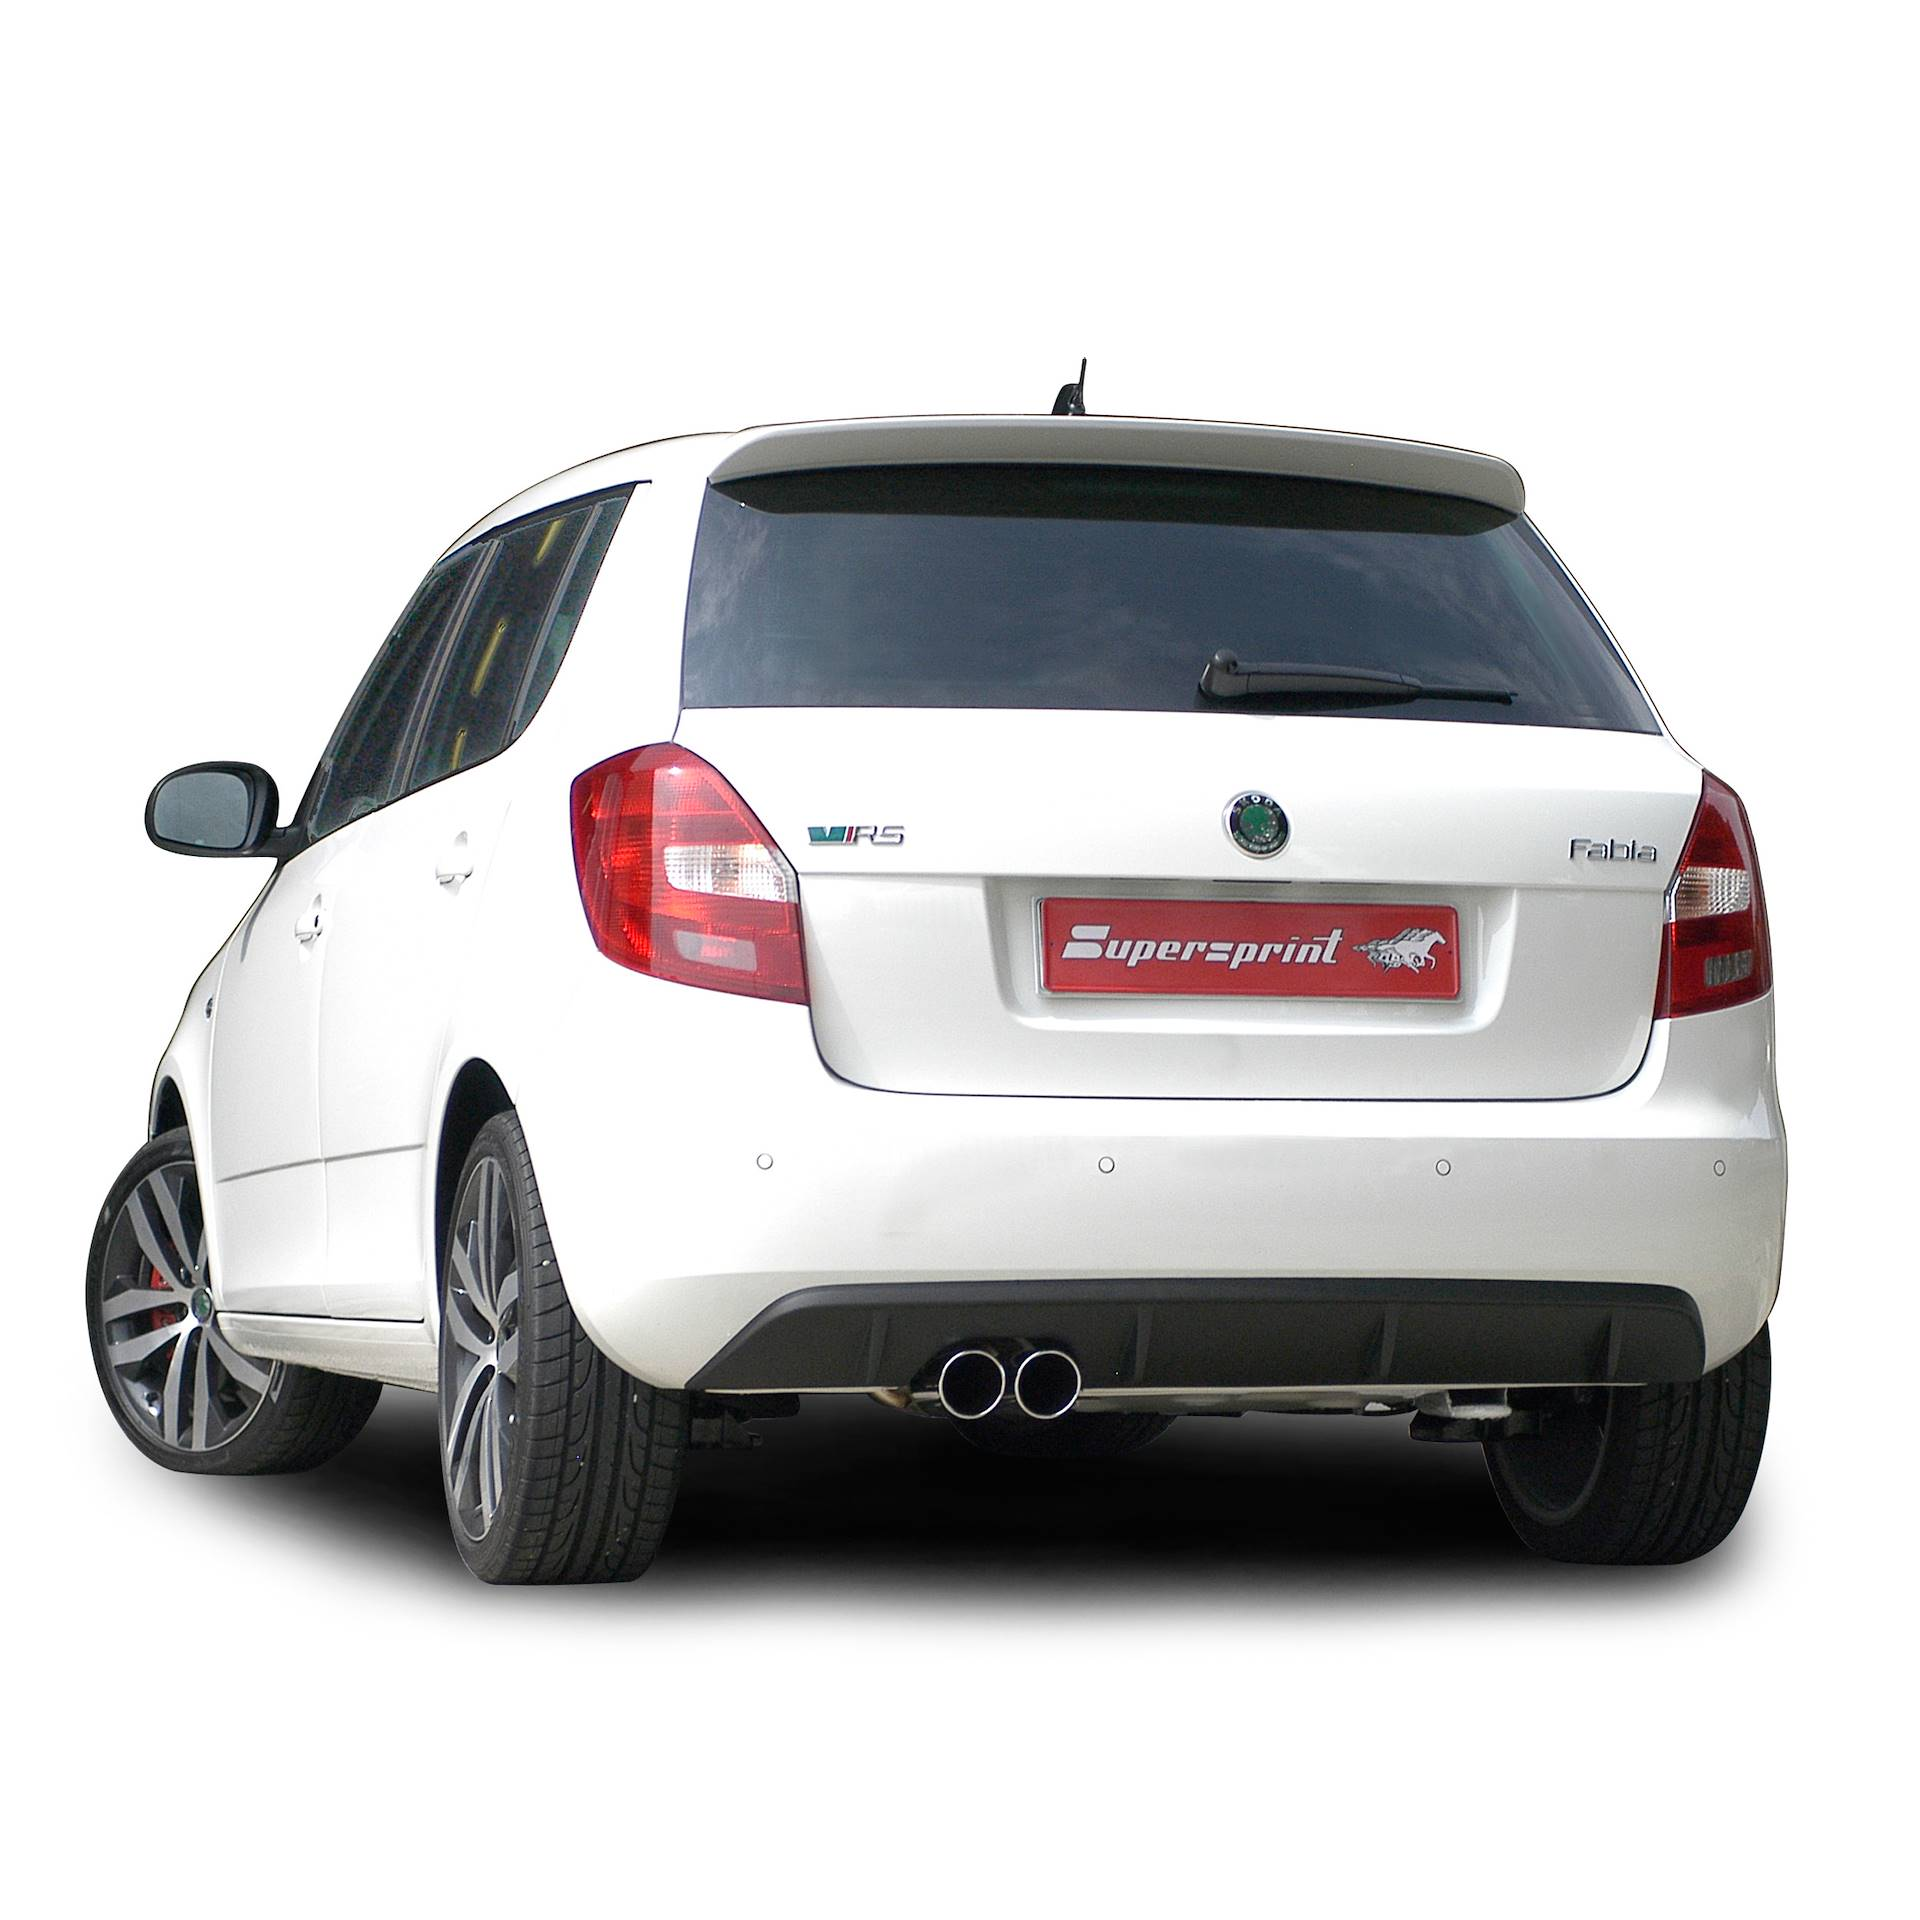 skoda fabia rs 1 4 tsi 180 ps by bbm motorsport supersprint auspuffanlage private videos. Black Bedroom Furniture Sets. Home Design Ideas